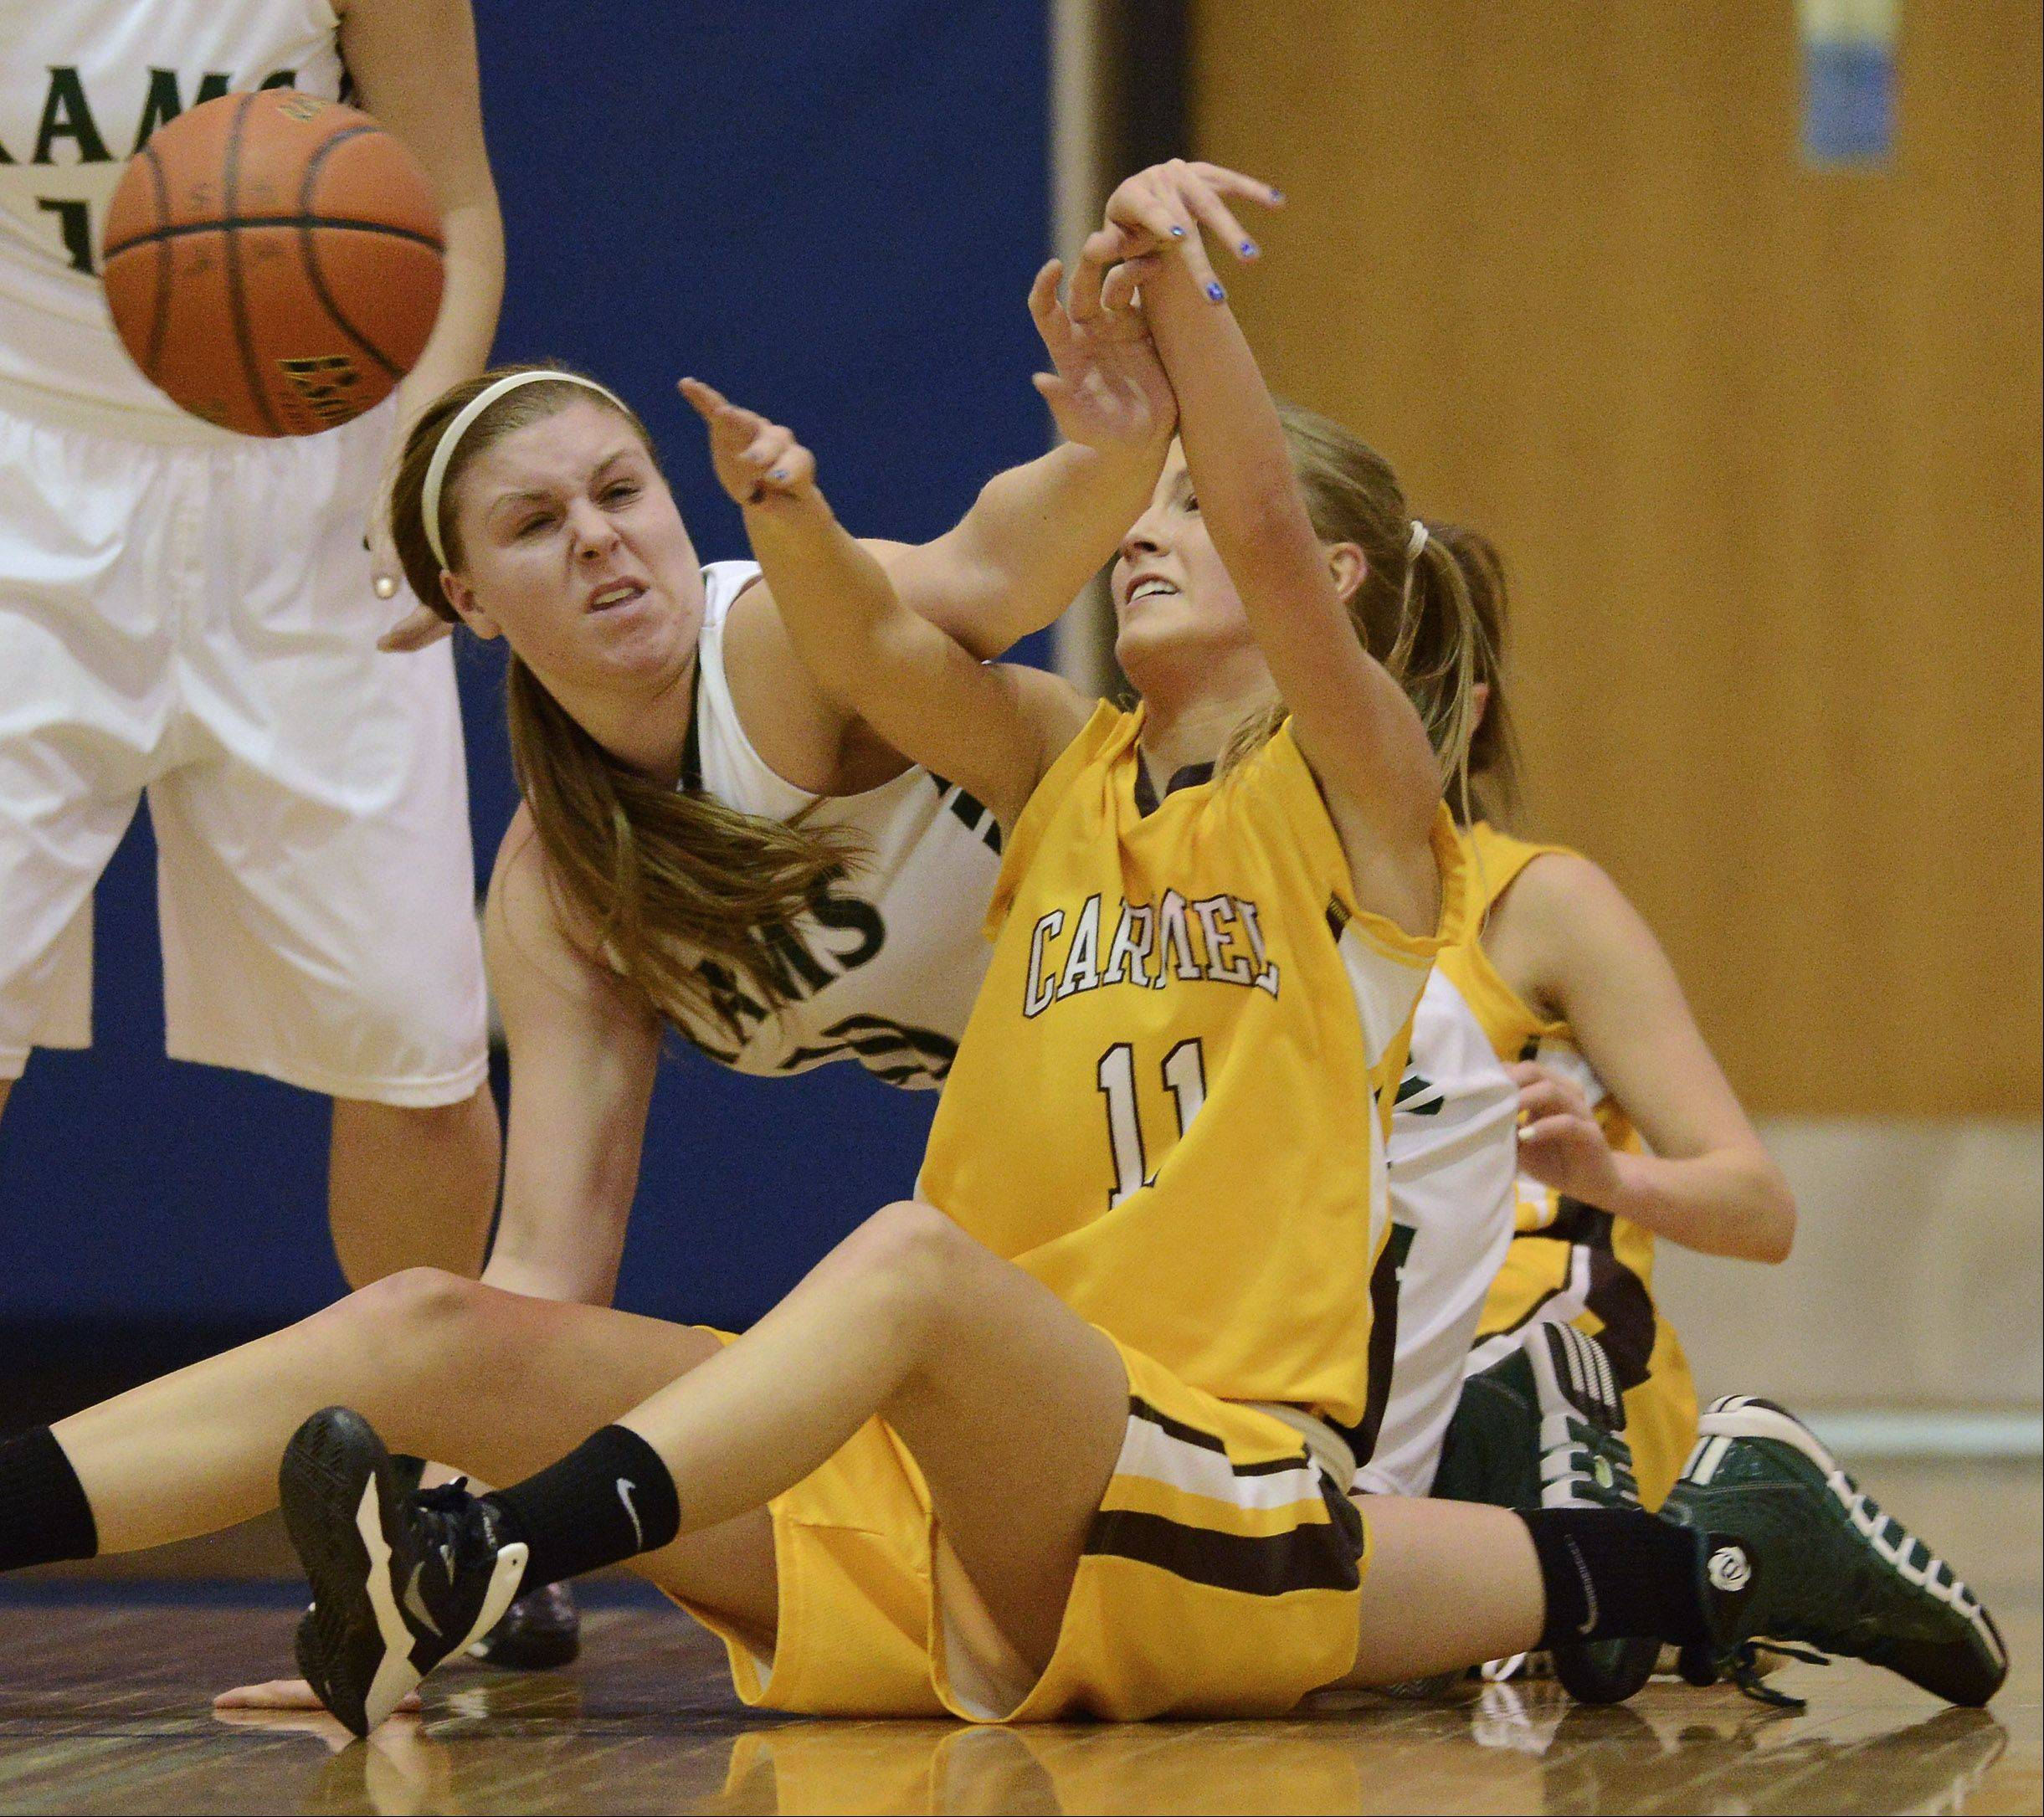 Carmel's Leah Lach, right, tries control a loose ball as Graylake Central's Maddy Miller deflects the pass Saturday at Warren.